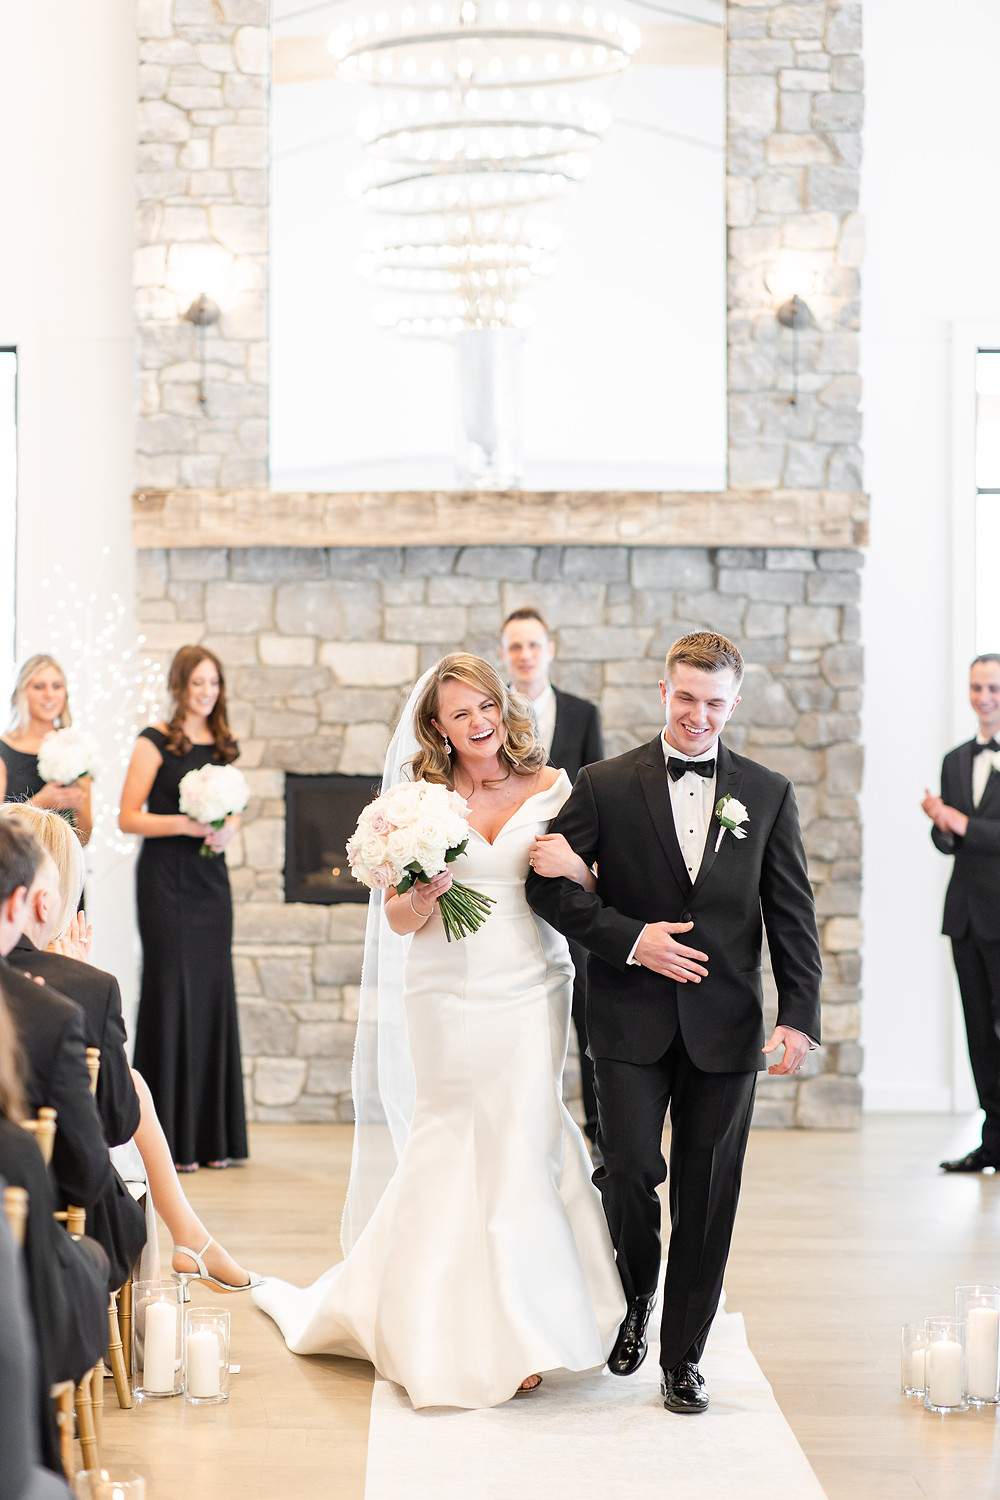 Josh and Andrea wedding photography husband and wife photographer team michigan venue Bay Pointe Woods shelbyville winter wedding ceremony bride and groom walking down aisle